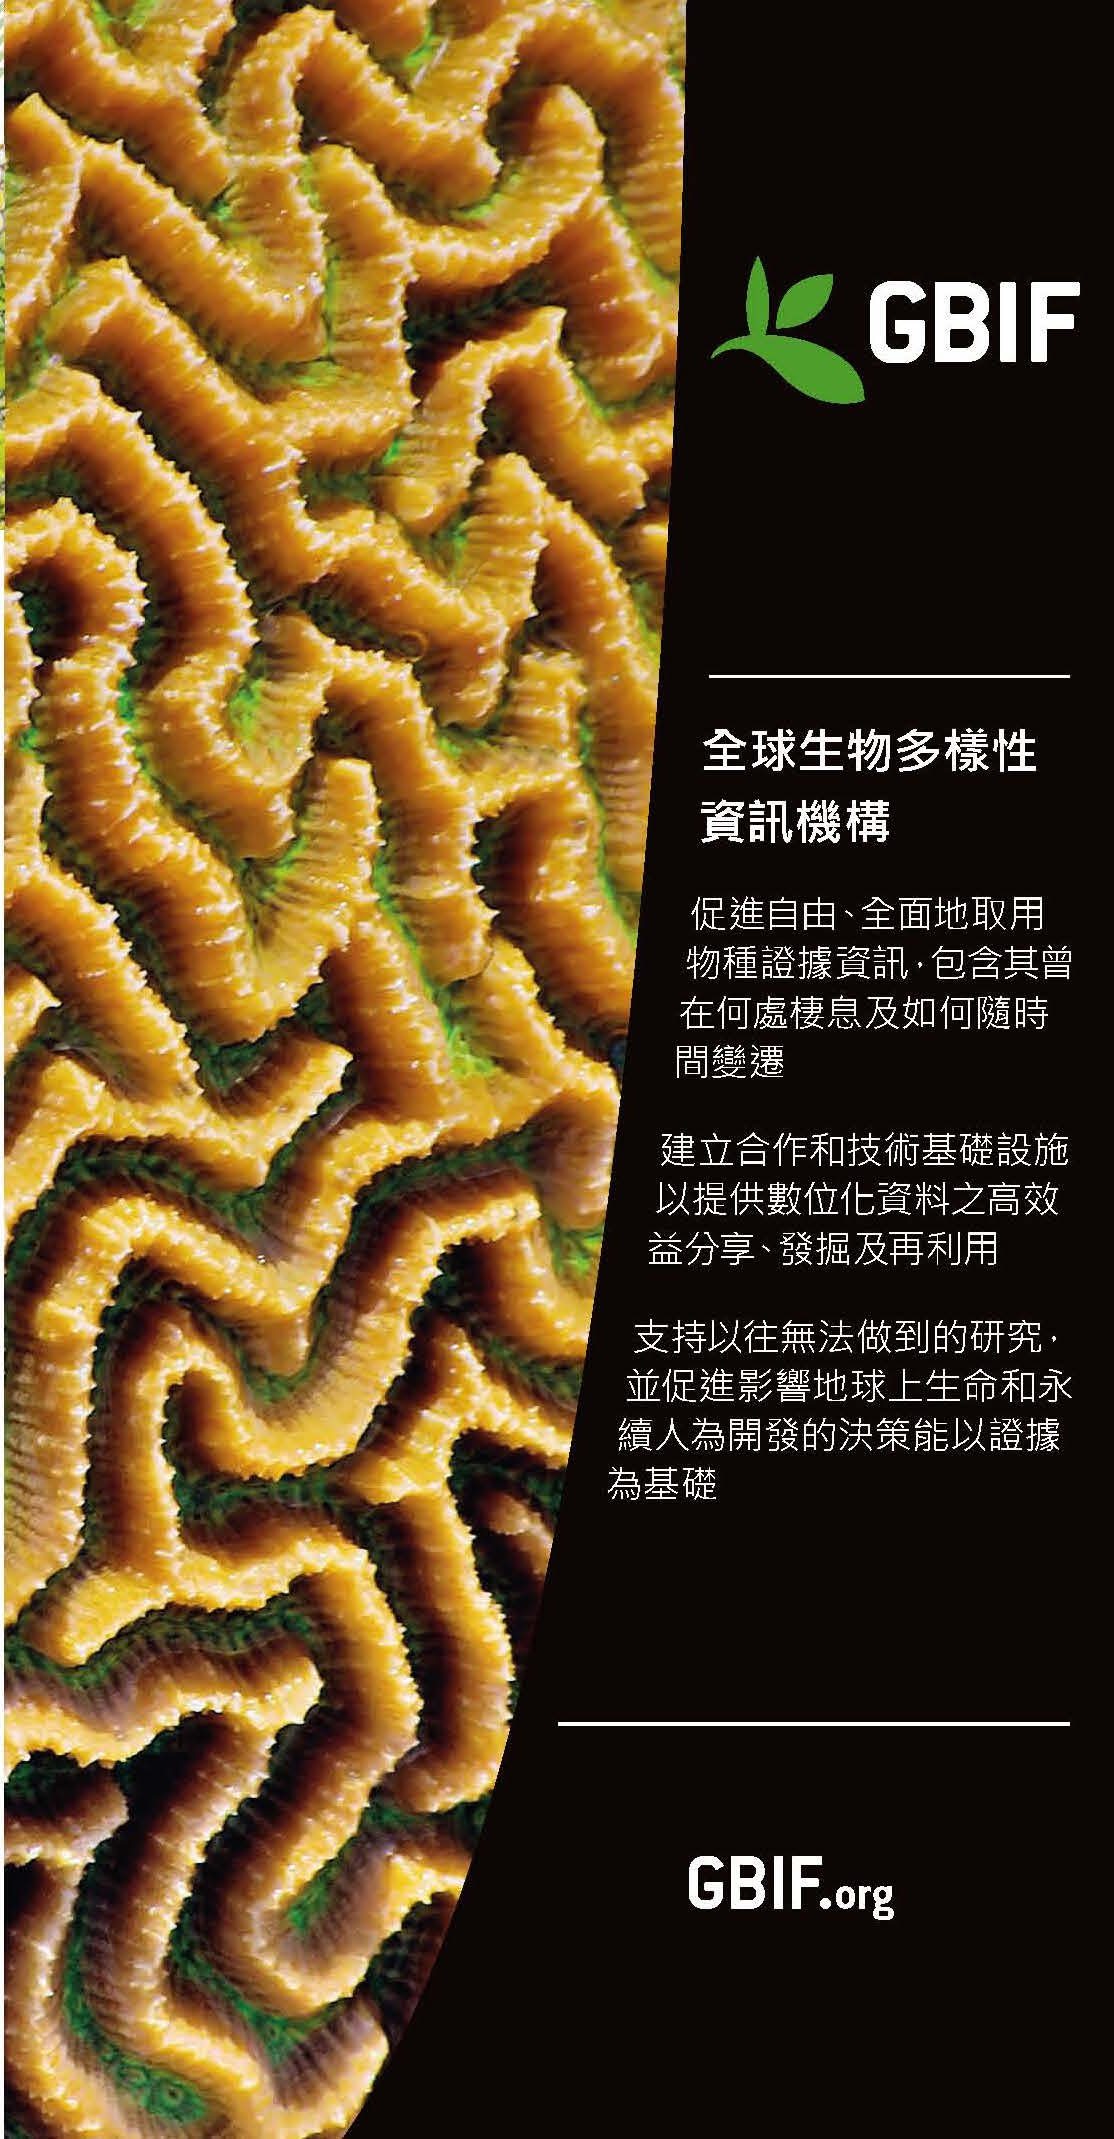 GBIF brochure, 2014 edition - Traditional Chinese